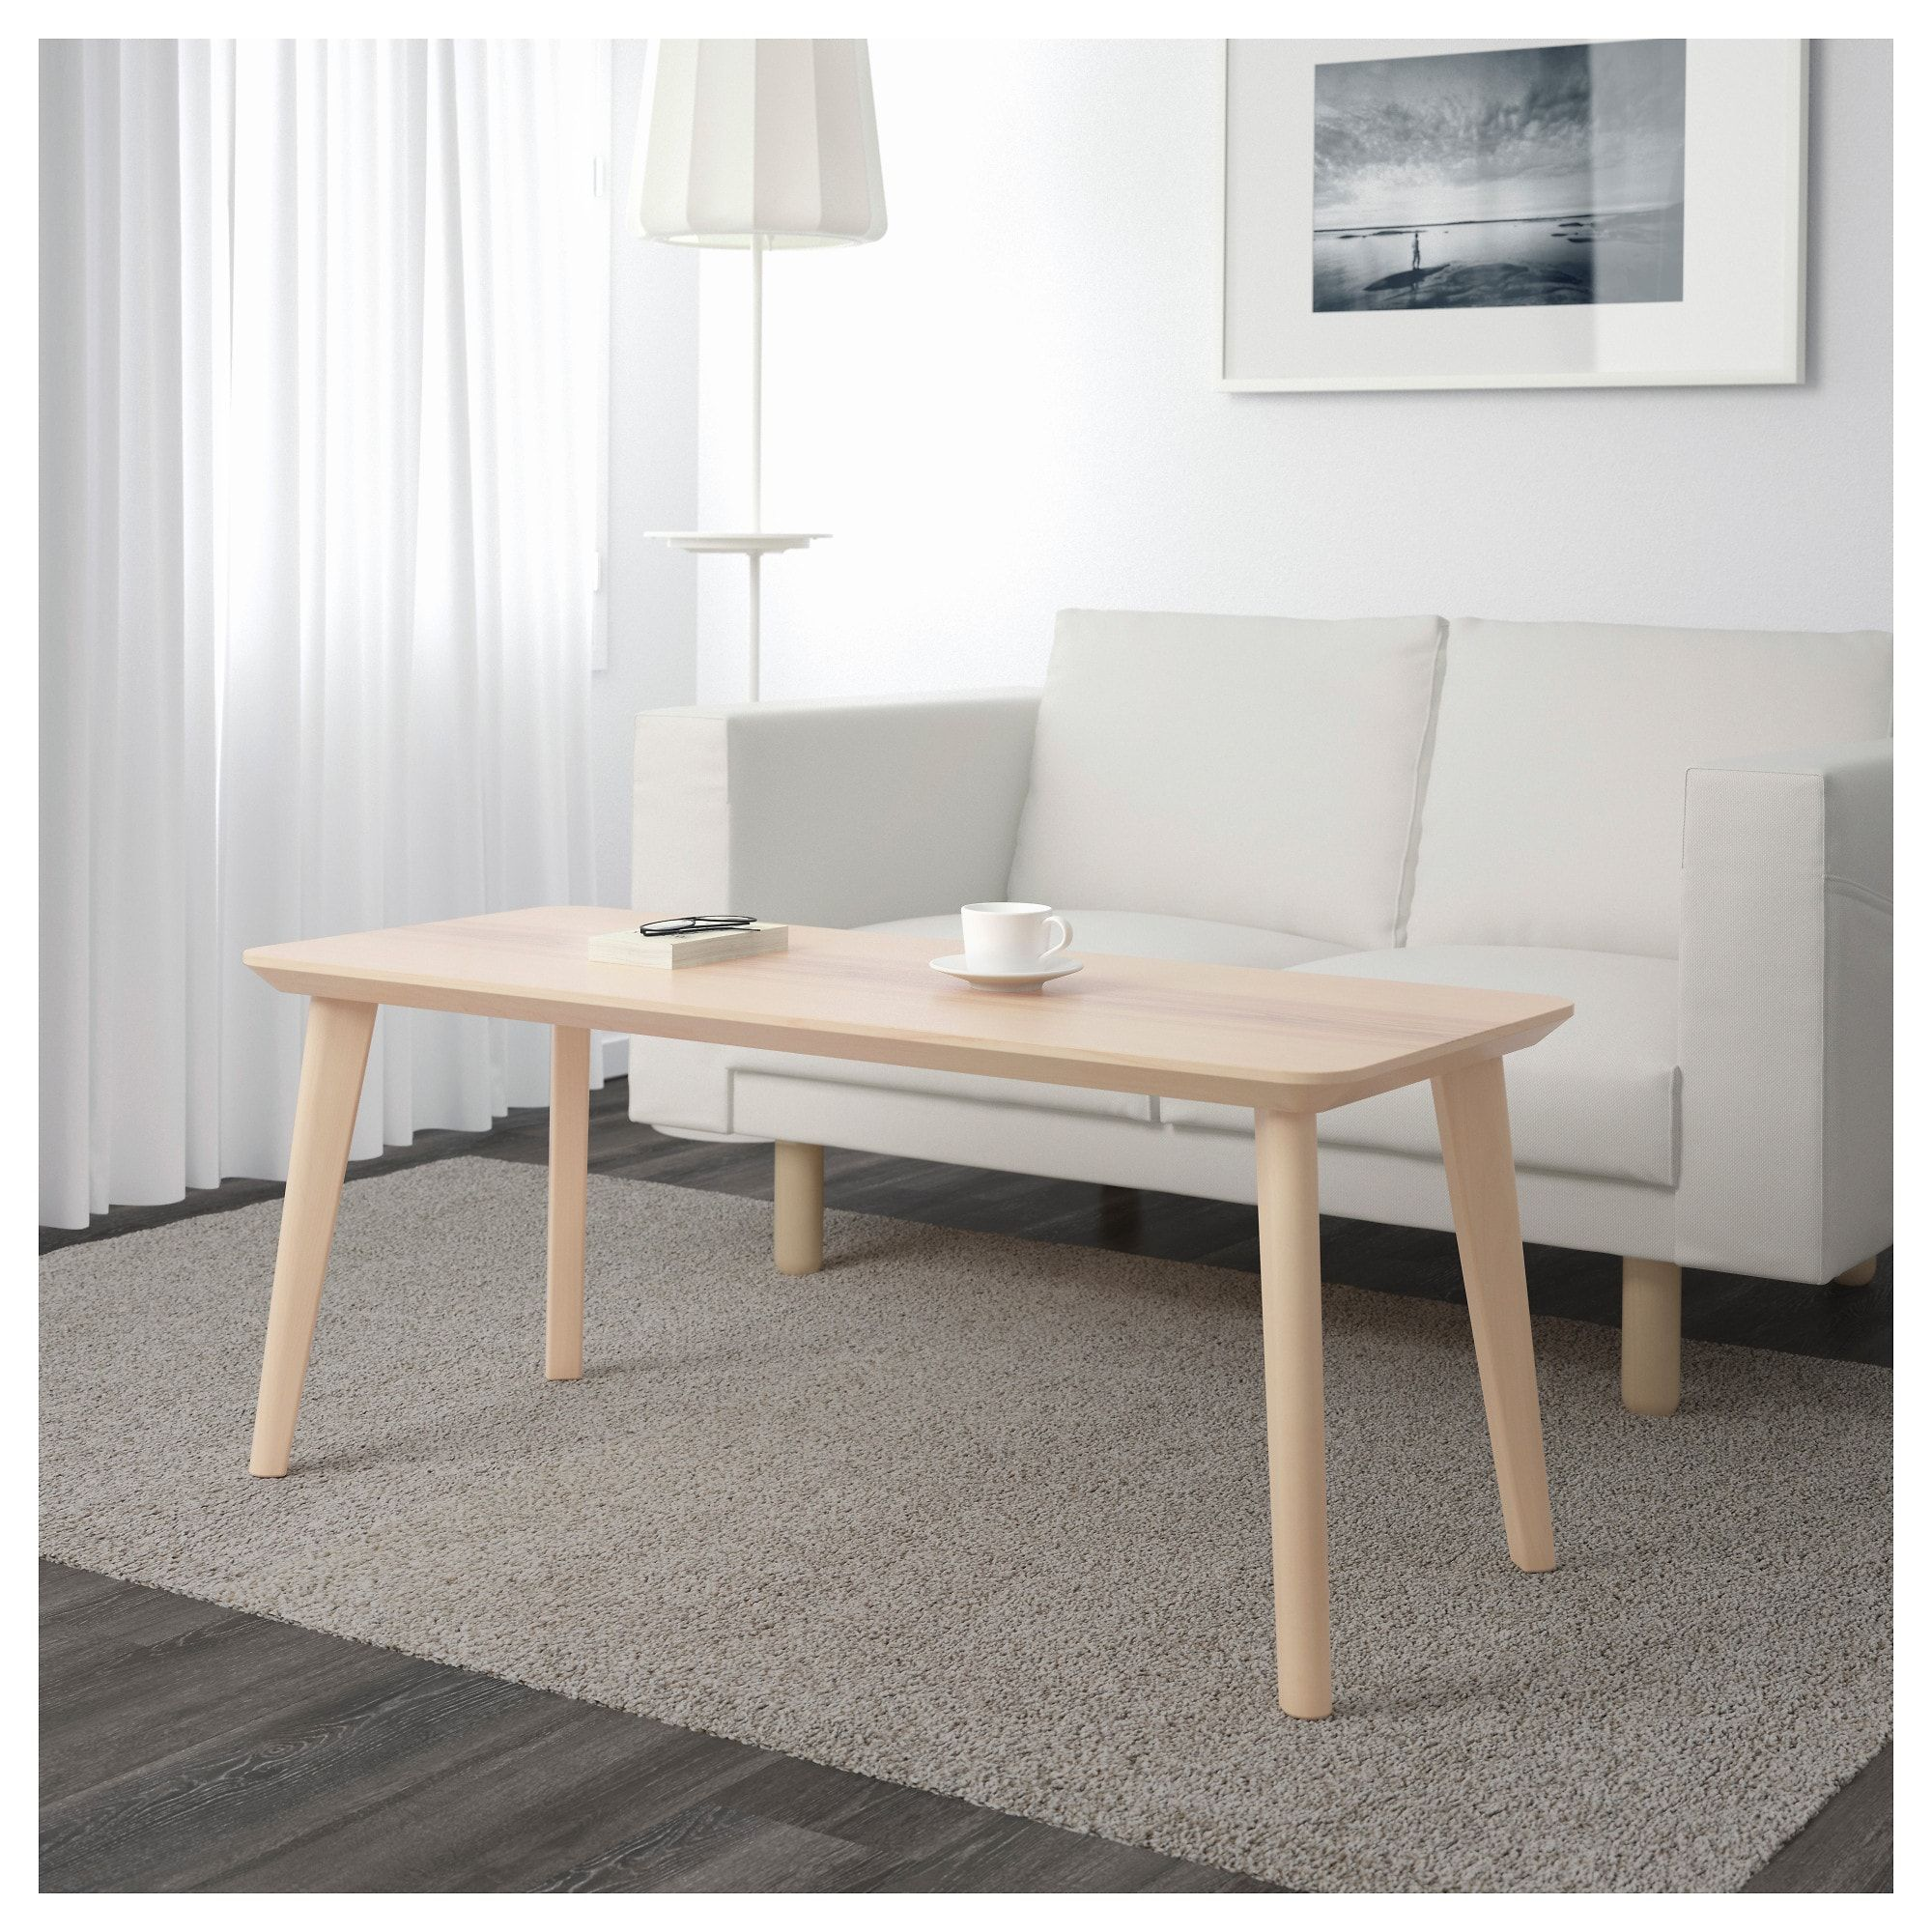 Lisabo Table Basse Plaque Frene 118x50 Cm Ikea Suisse Birch Dining Table Coffee Table Furniture [ 2000 x 2000 Pixel ]